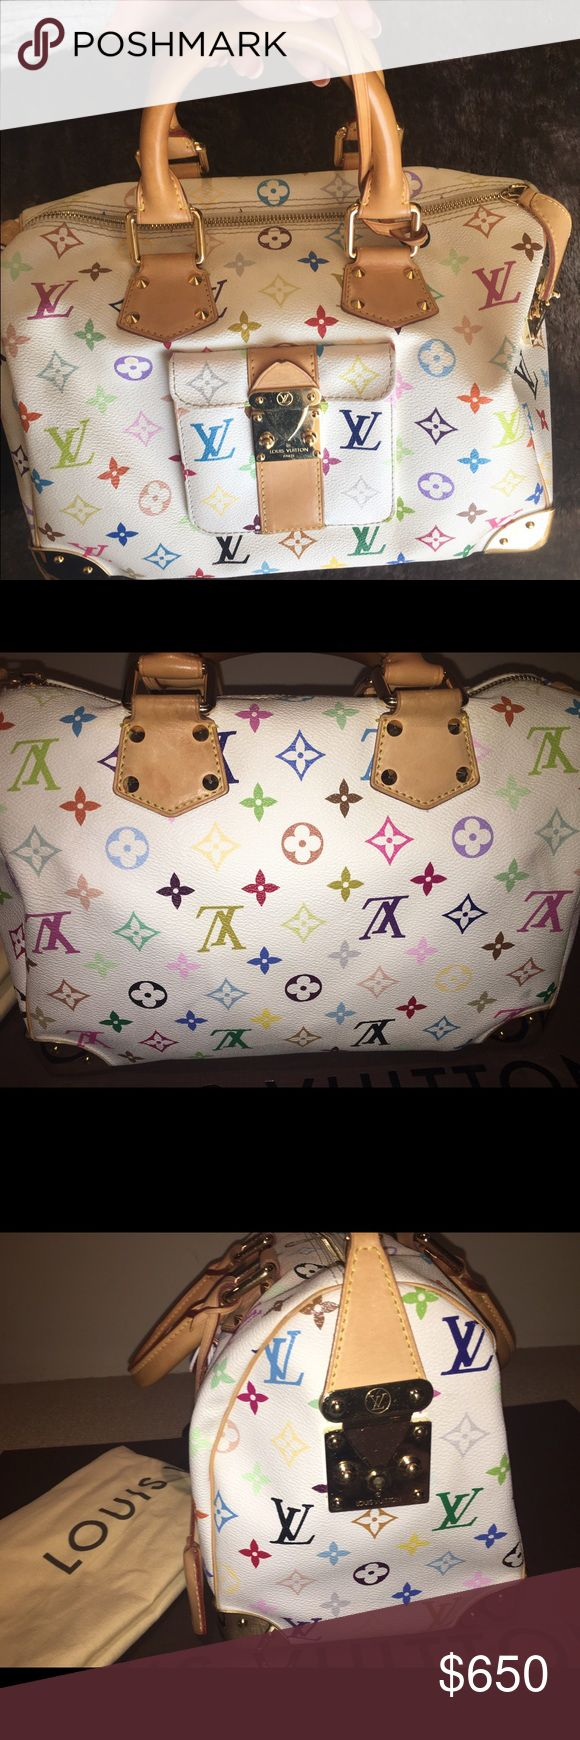 Louis Vuitton Speedy 30 multicolor Authentic bag in excellent condition purchased from Louis Vuitton store in San Diego, Ca. No stains on the exterior or interior and the leather handles still have a nice tan new color. Selling it because I just bought a new white Never full Louis bag and I can't keep them both. Louis Vuitton Bags Totes